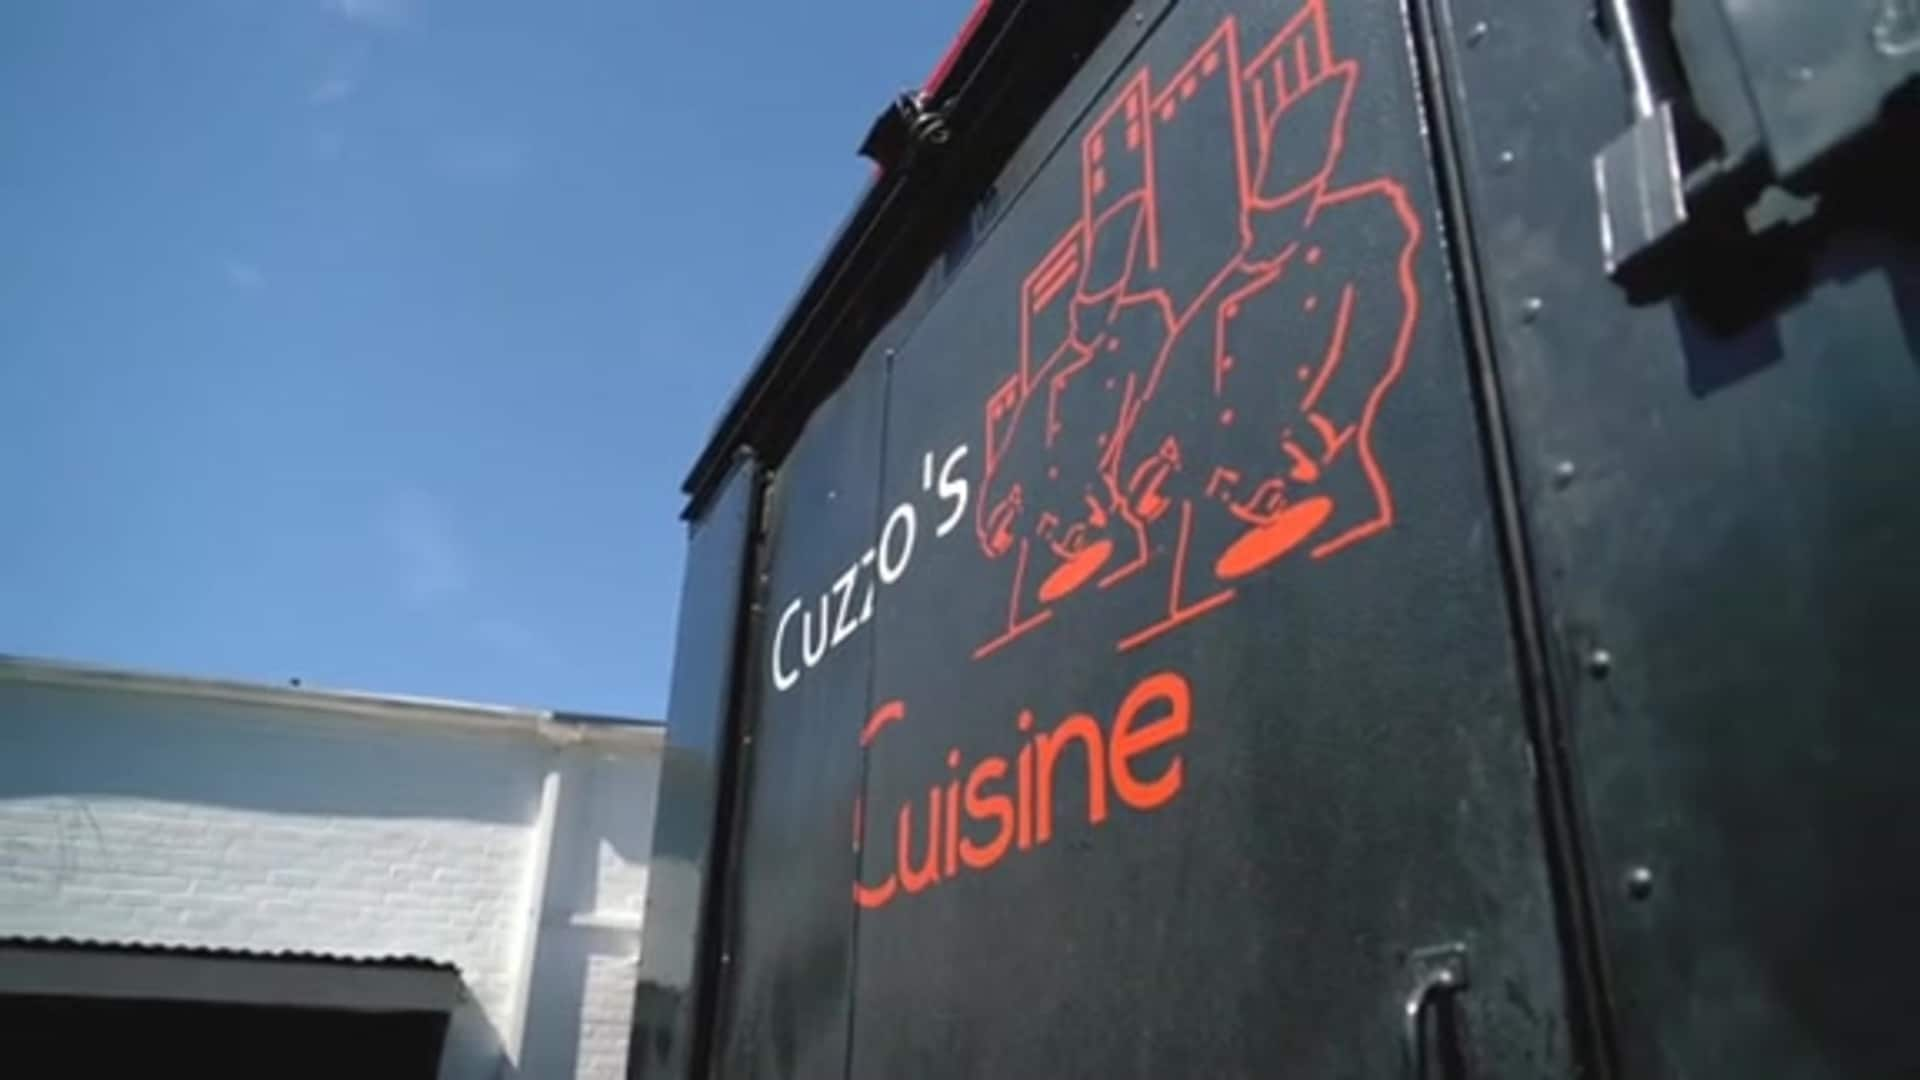 2020 Week of Service Black-Owned Business Spotlight - Cuzzos Cuisine